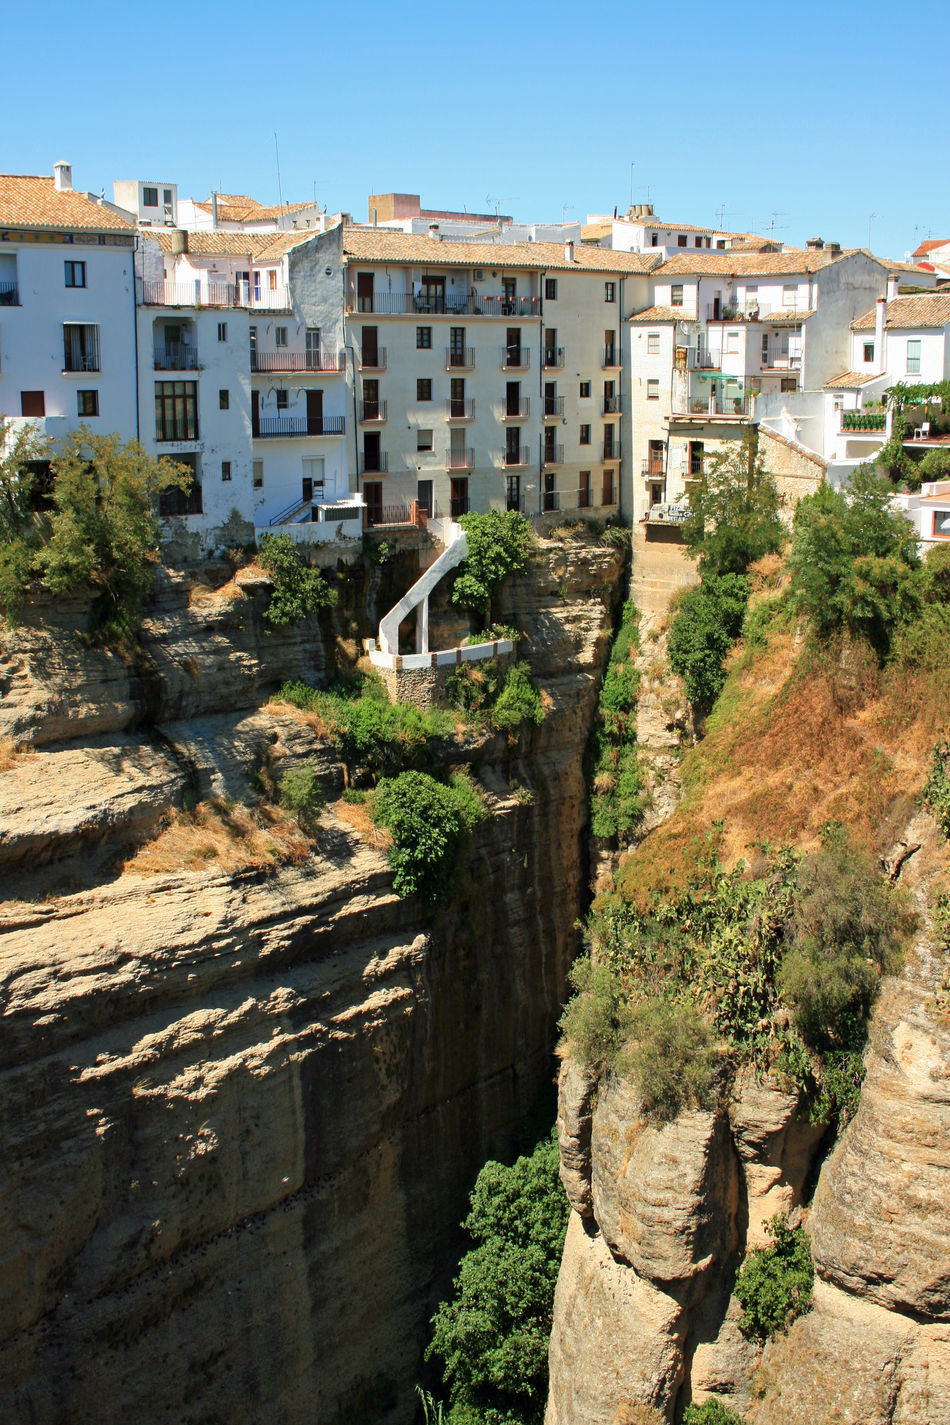 Views of Ronda, Costa Del Sol Andalucia Spain Andalusia Theme Bull Ring Bull Ring. Bull Statue Cliff Face Ronda Ronda Andalucia Ronda Bridge Ronda Bull Ring Ronda Costa Del Sol Ronda Scenery Ronda Spain Southern Spain SPAIN Spain Ronda Spain♥ Statue Views Of Ronda